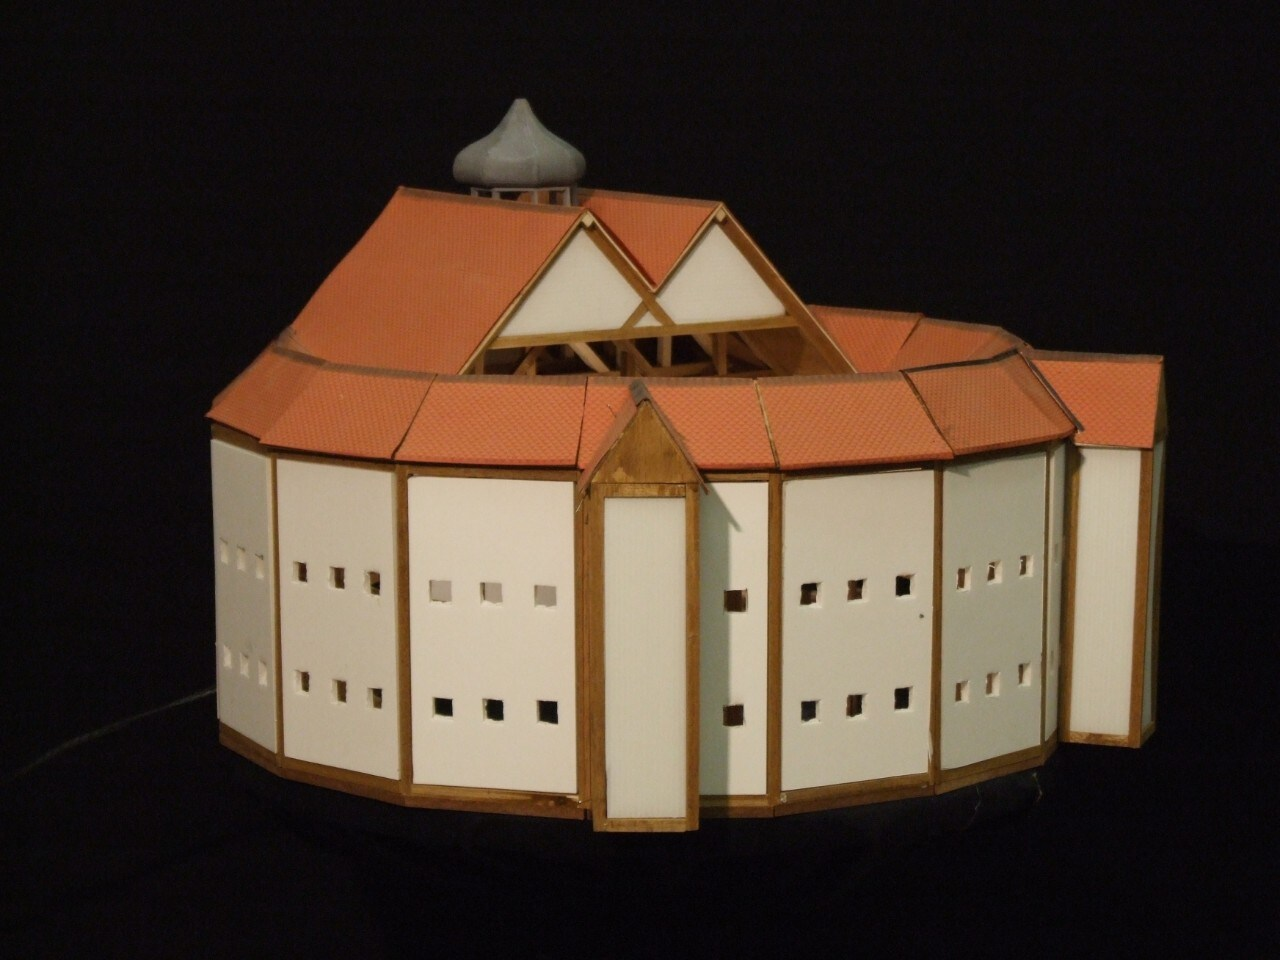 The second Globe theatre as envisioned by renowned Czech panoramist Wenceslaus Hollar. Image: Tim Fitzpatrick.